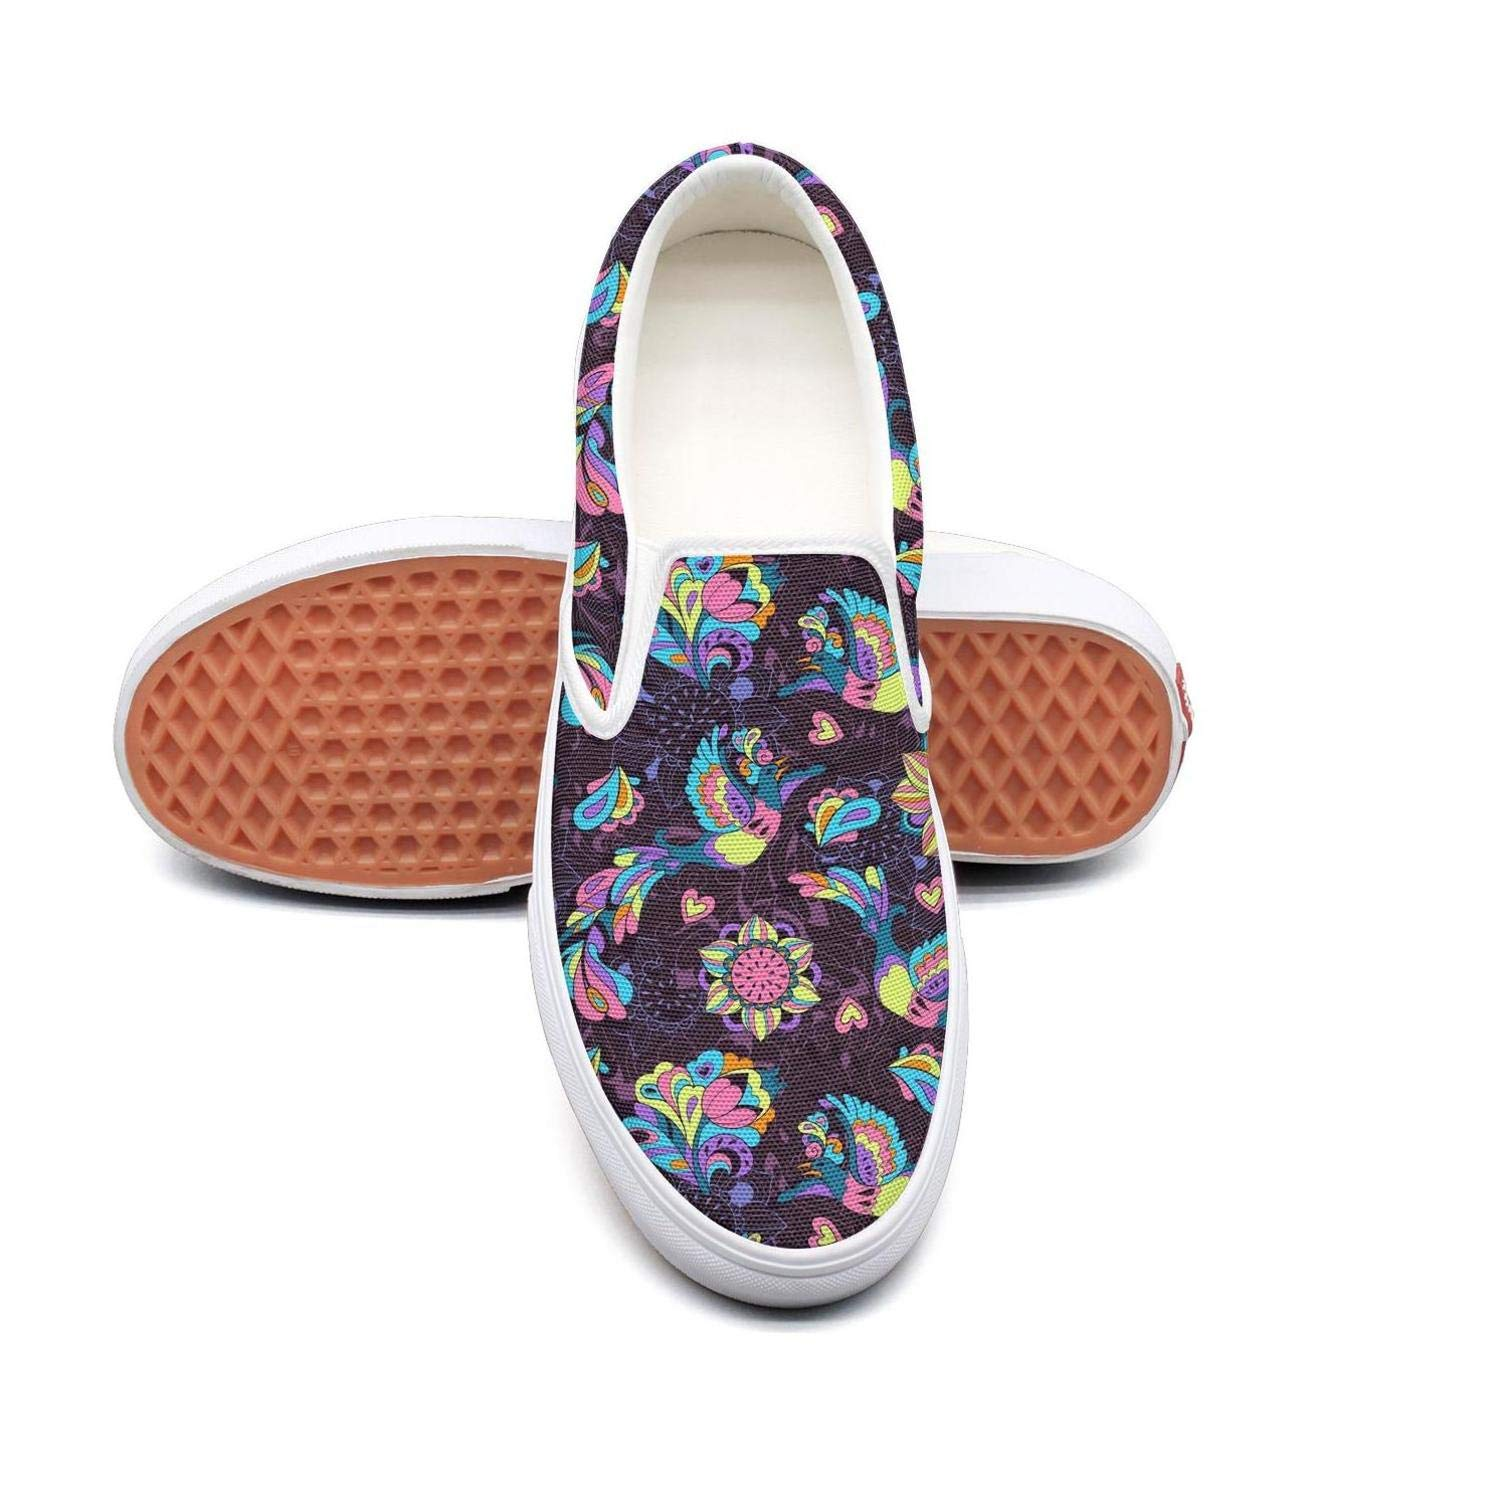 KJGDFS Sunflower Flower with Bees Running Shoes Canvas Daily for Women